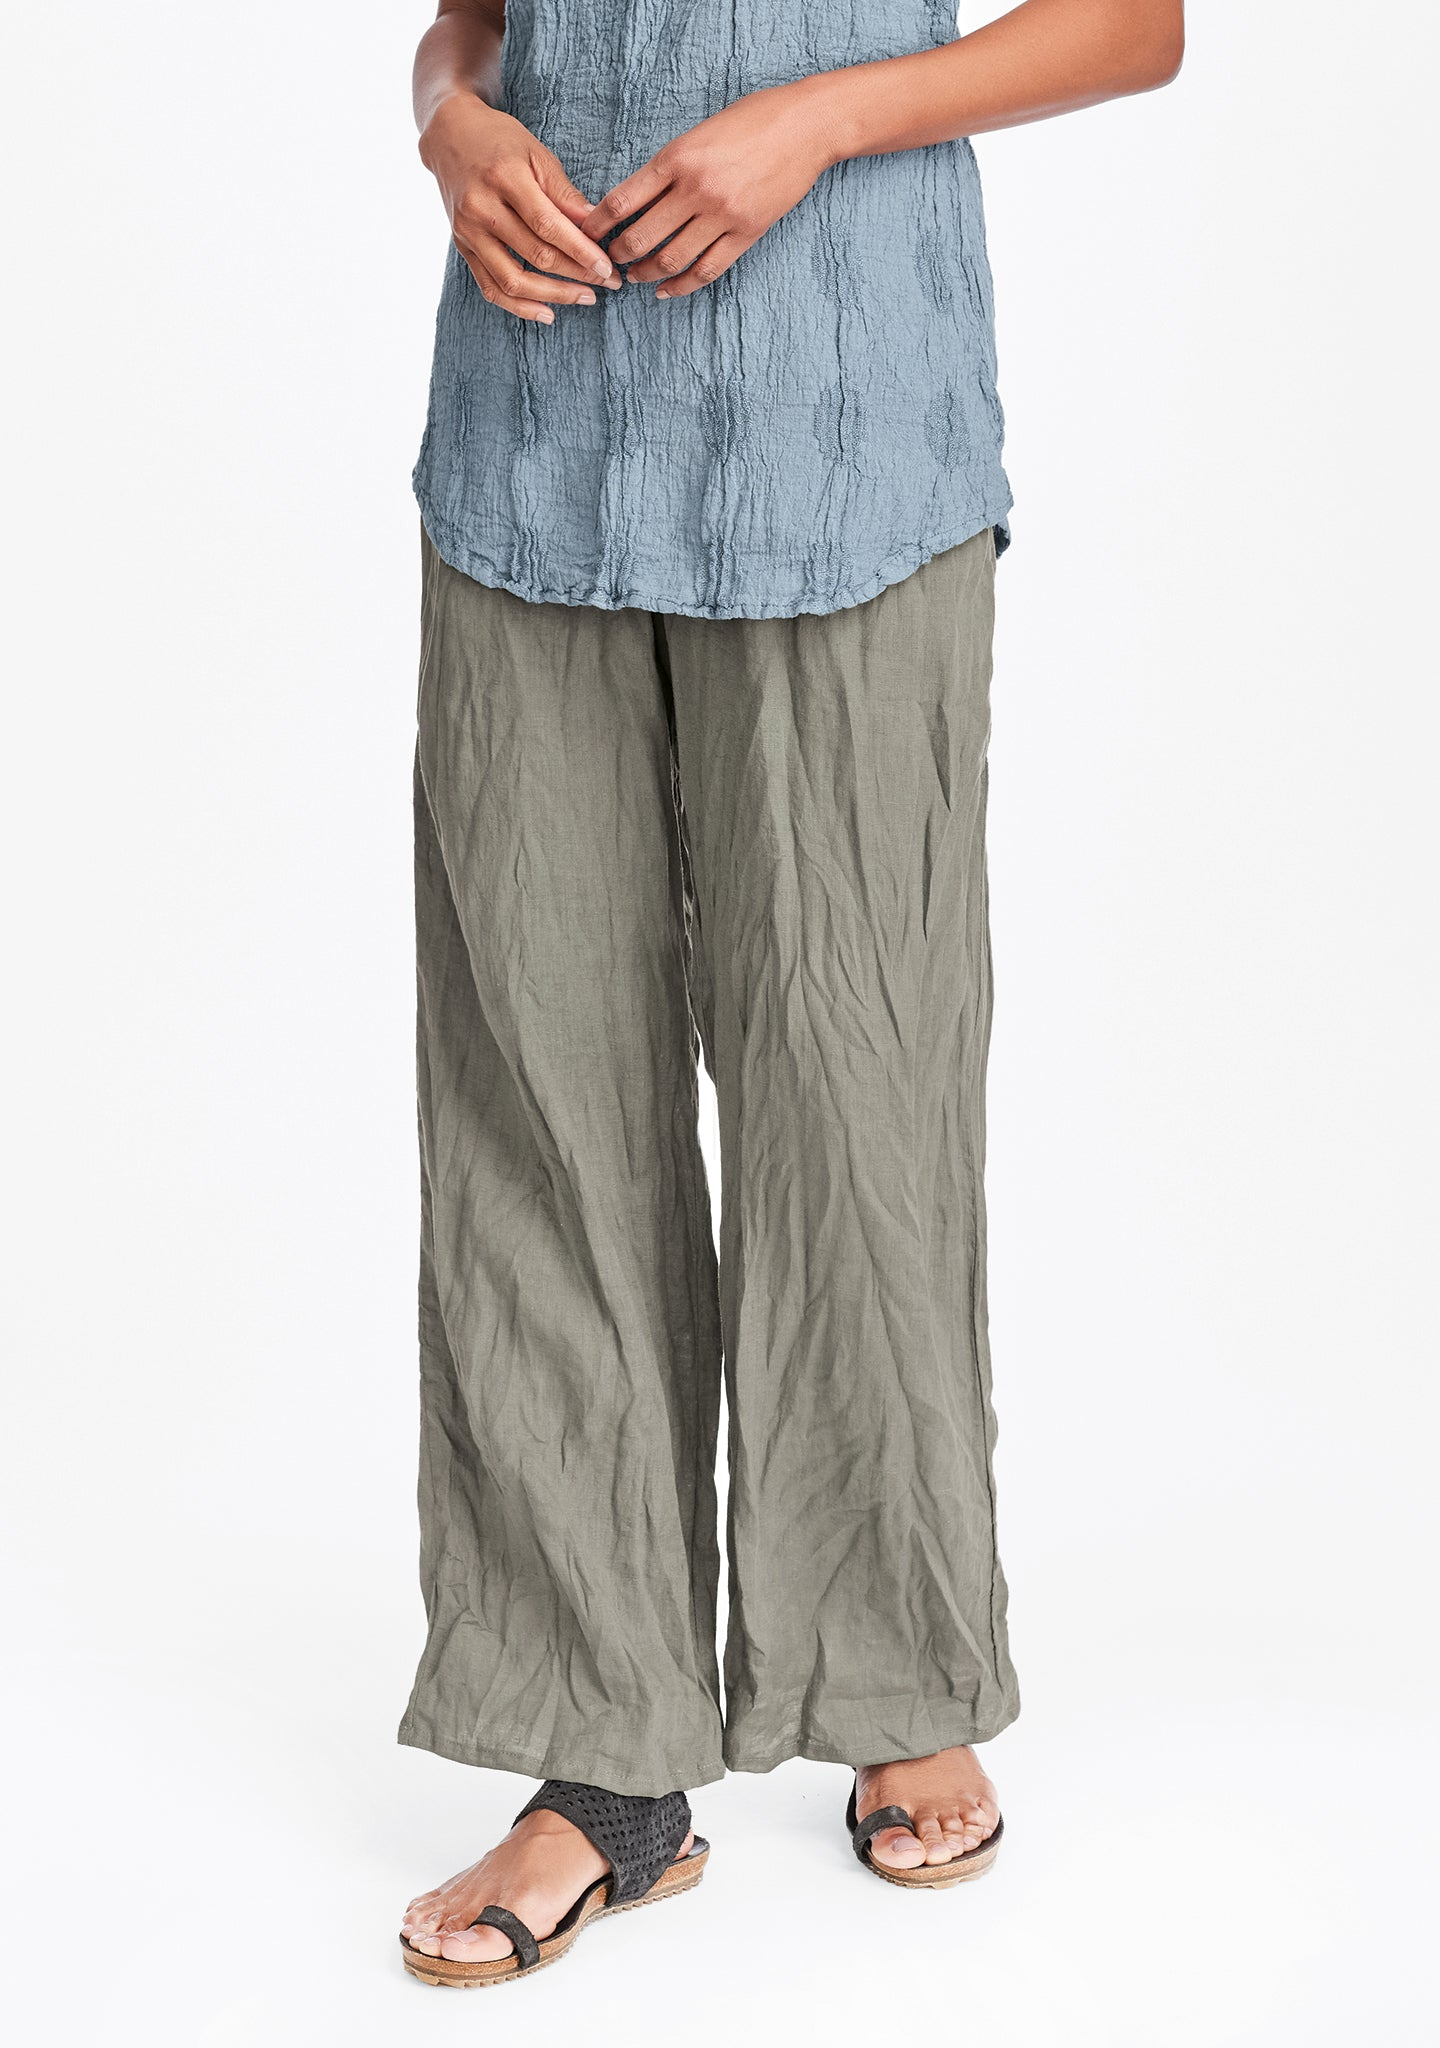 flat iron pant linen drawstring pants green